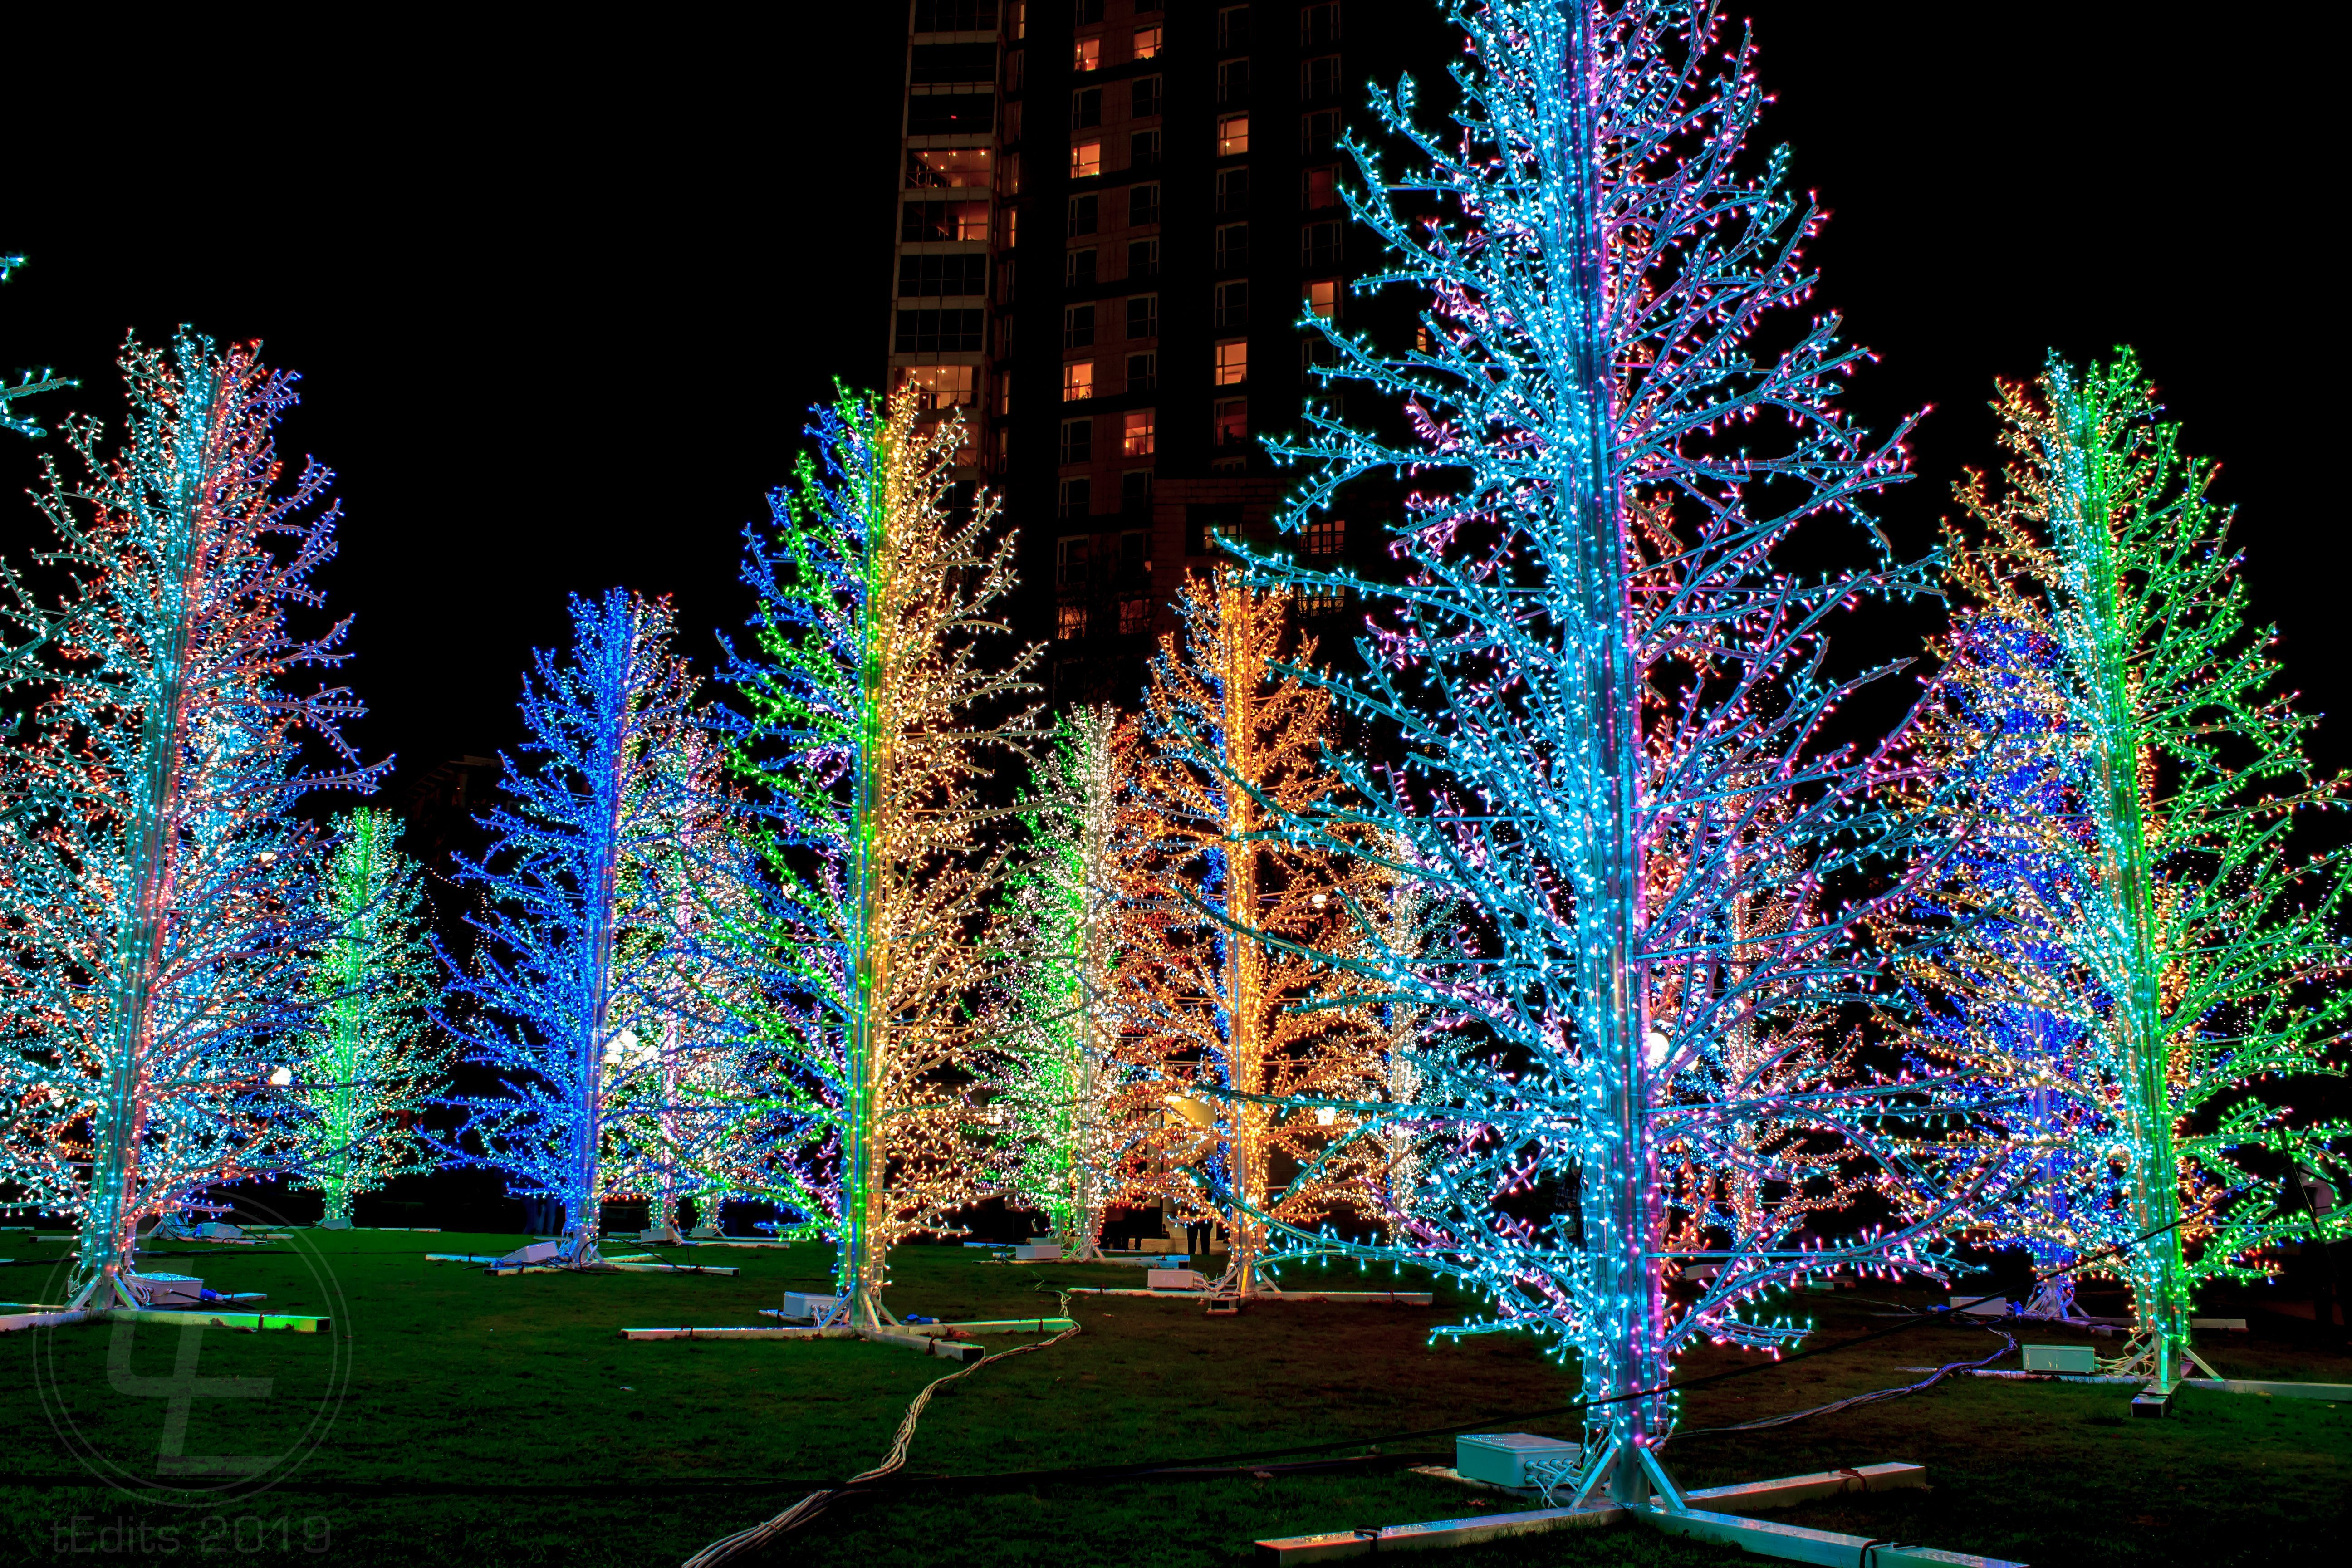 Canary Wharf Winter Lights 2019 - Sasha Trees, Adam Decolight